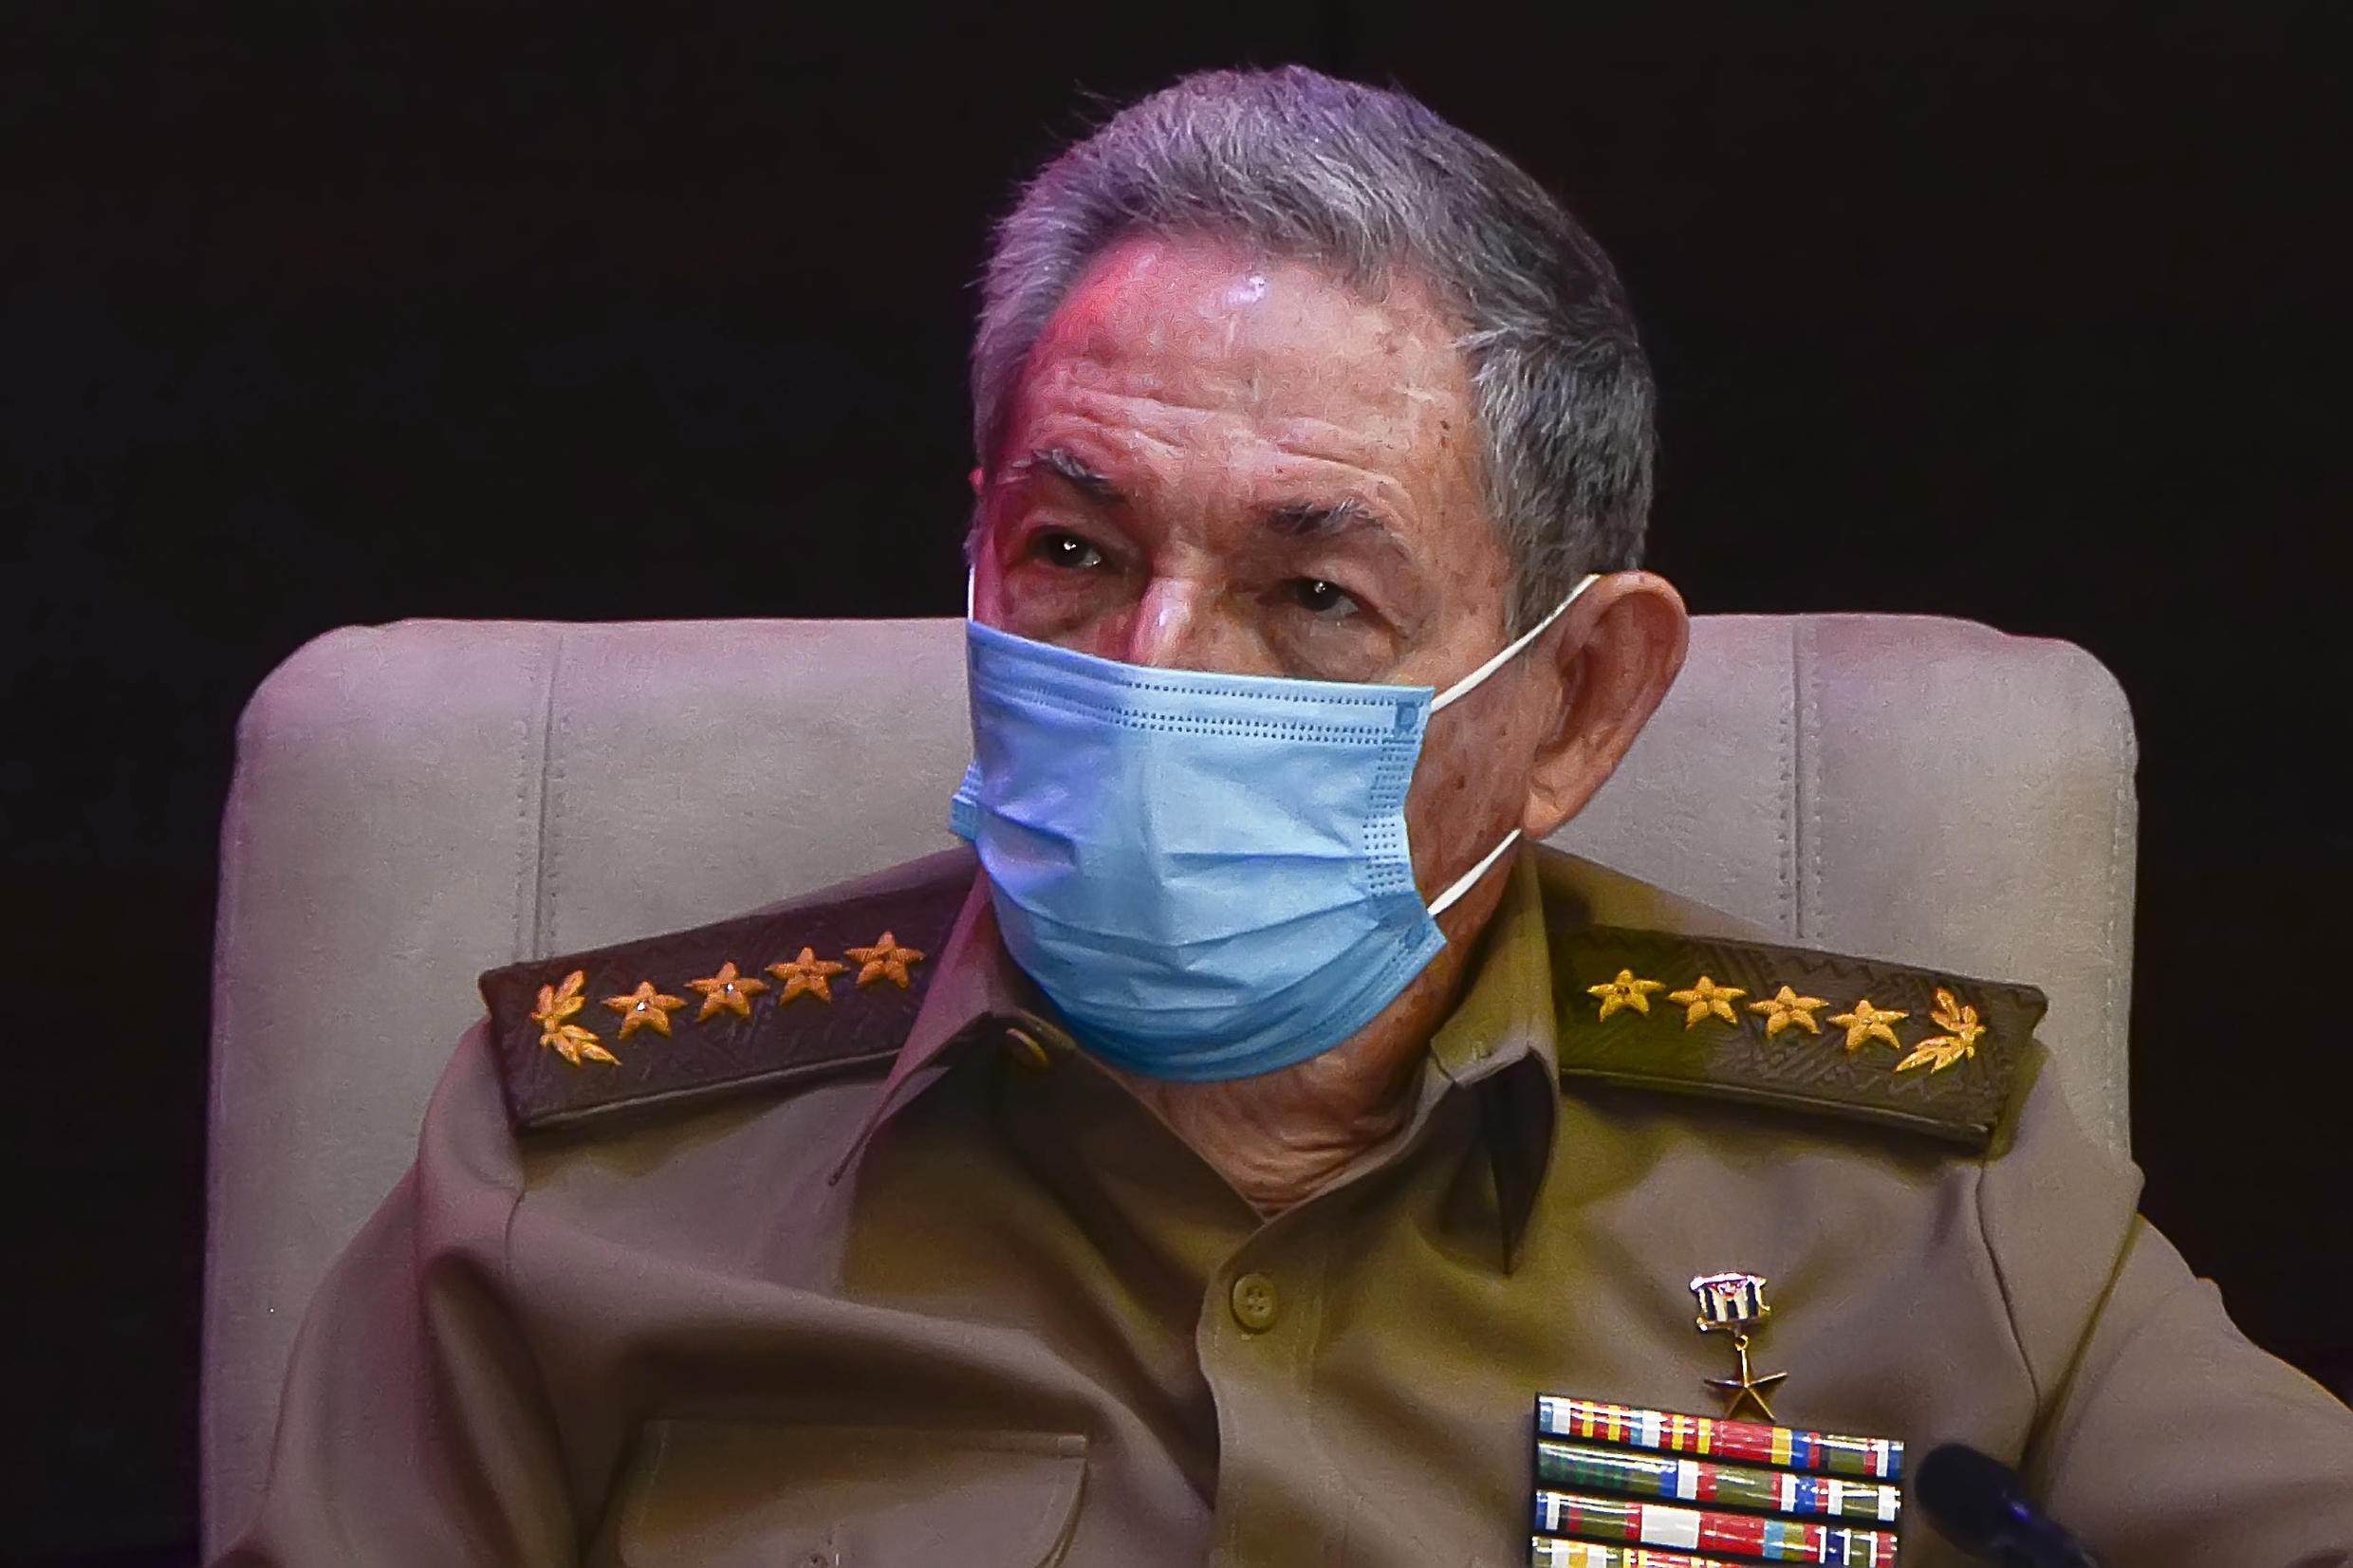 Raul Castro, 89, stepped down Monday after launching unprecedented reforms such as opening the single-party state's economy to the private sector